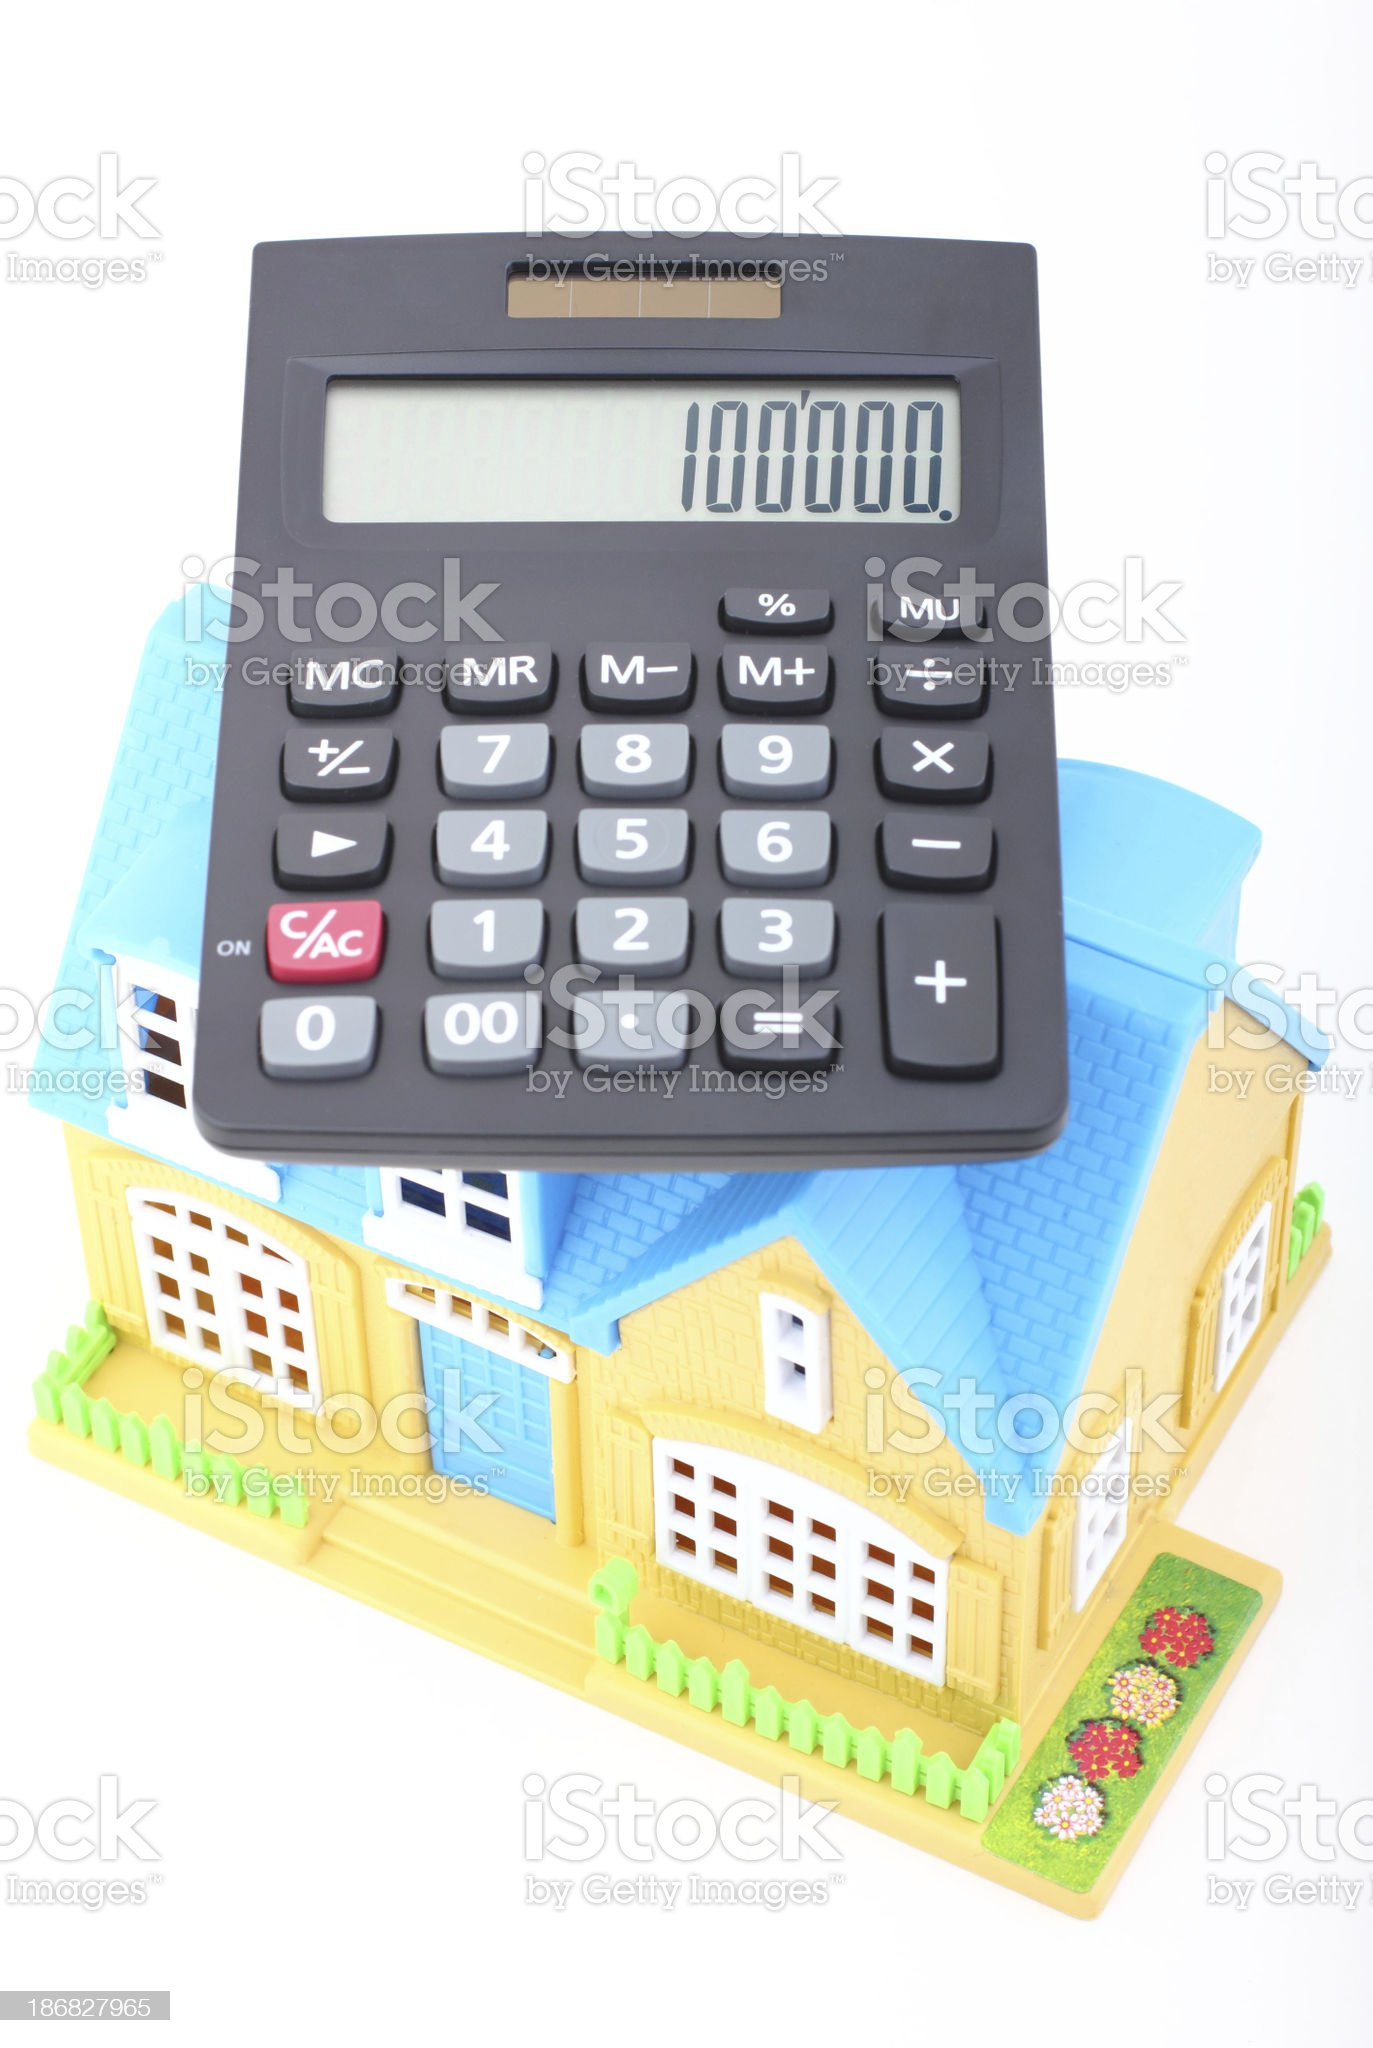 Home Financing royalty-free stock photo